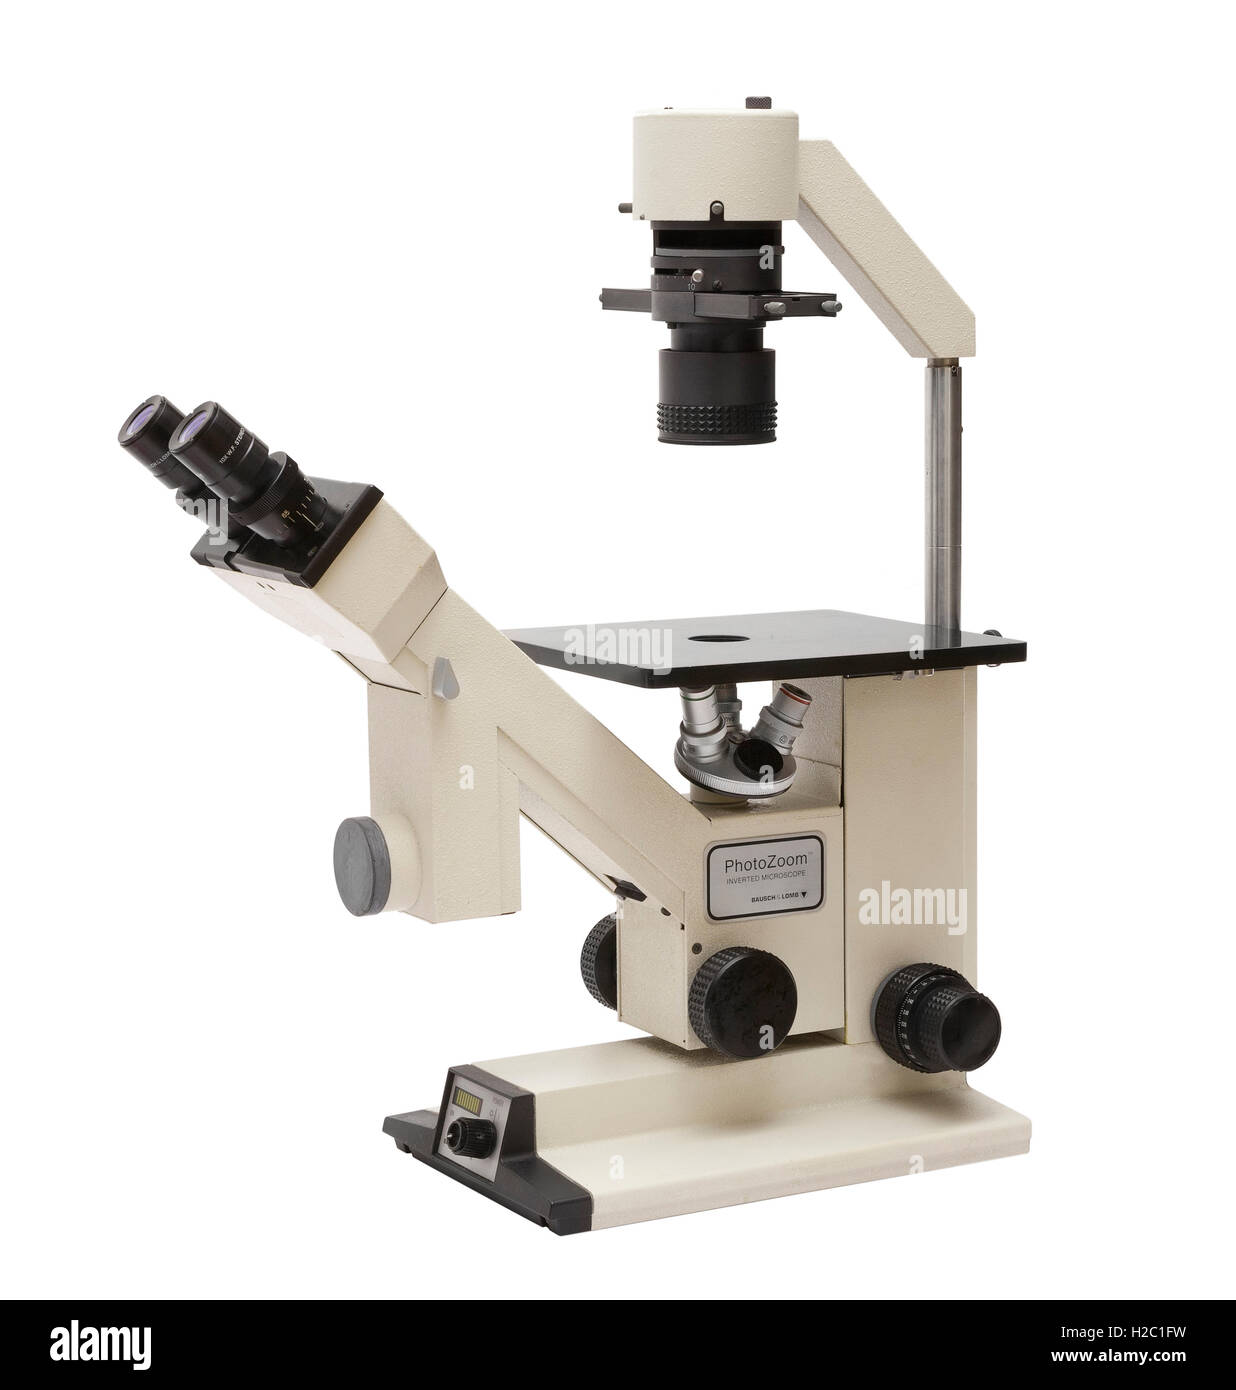 Inverted trinocular microscope by Bausch & Lomb USA - Stock Image